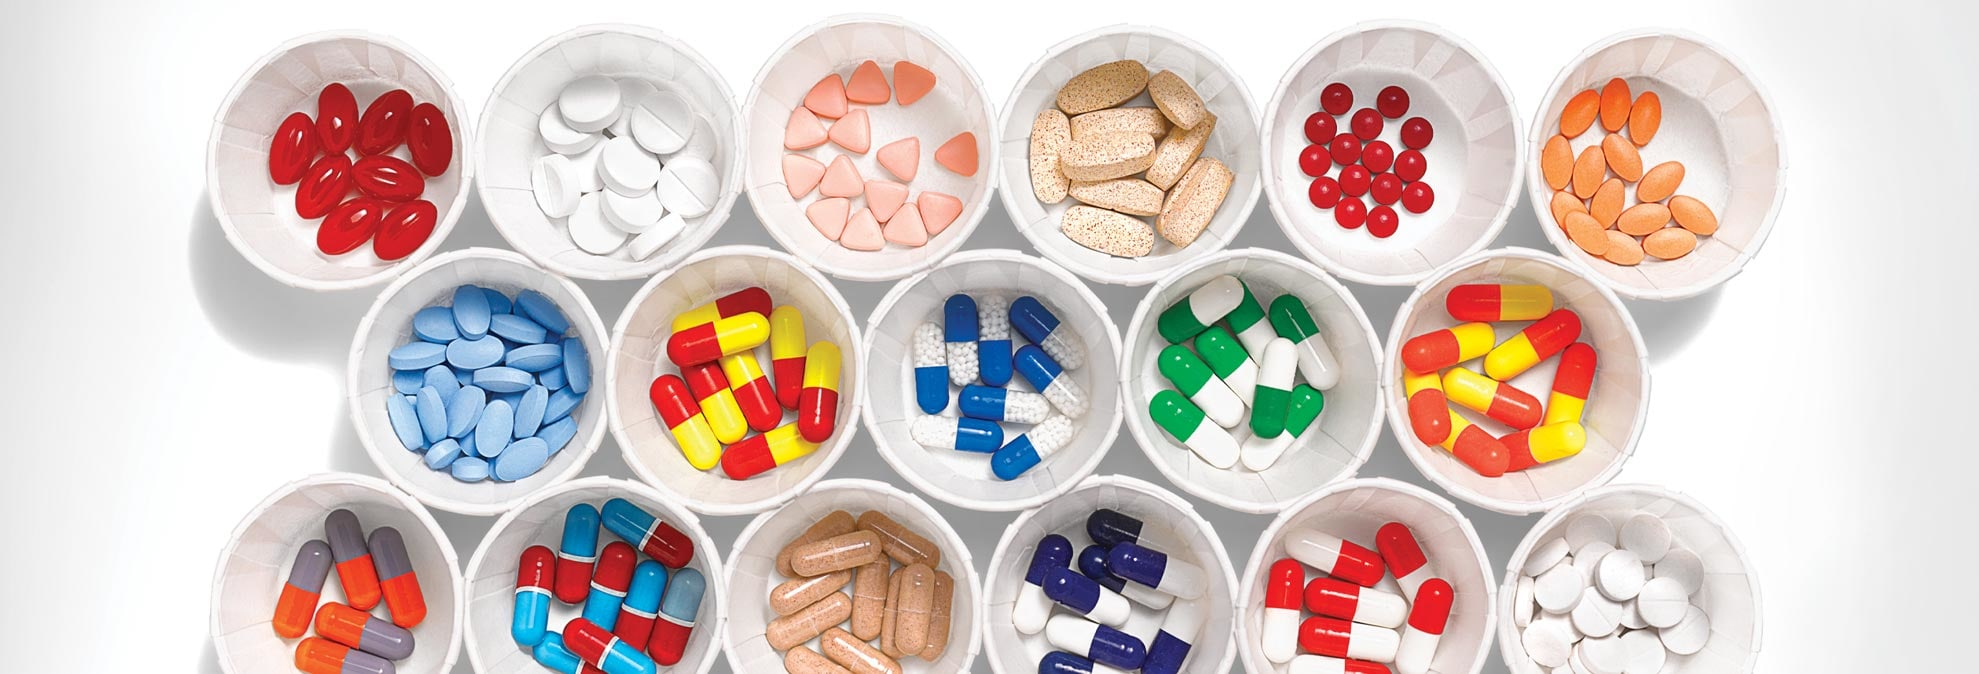 How Americas Overmedicating Low Income >> America S Love Affair With Prescription Medication Consumer Reports